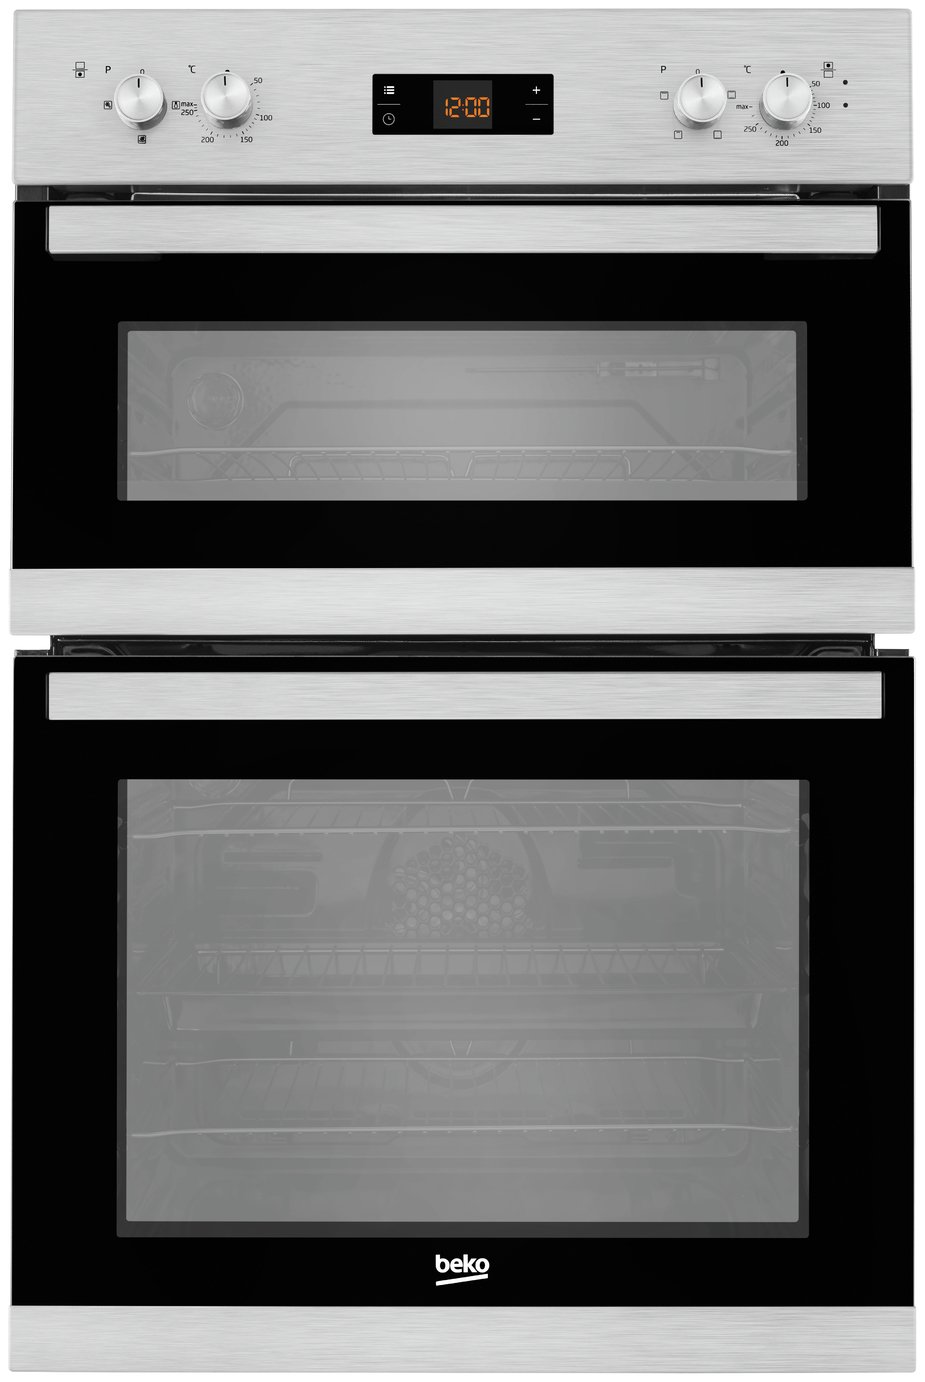 Image of Beko BADF22300X Double Built-In Oven - Stainless Steel